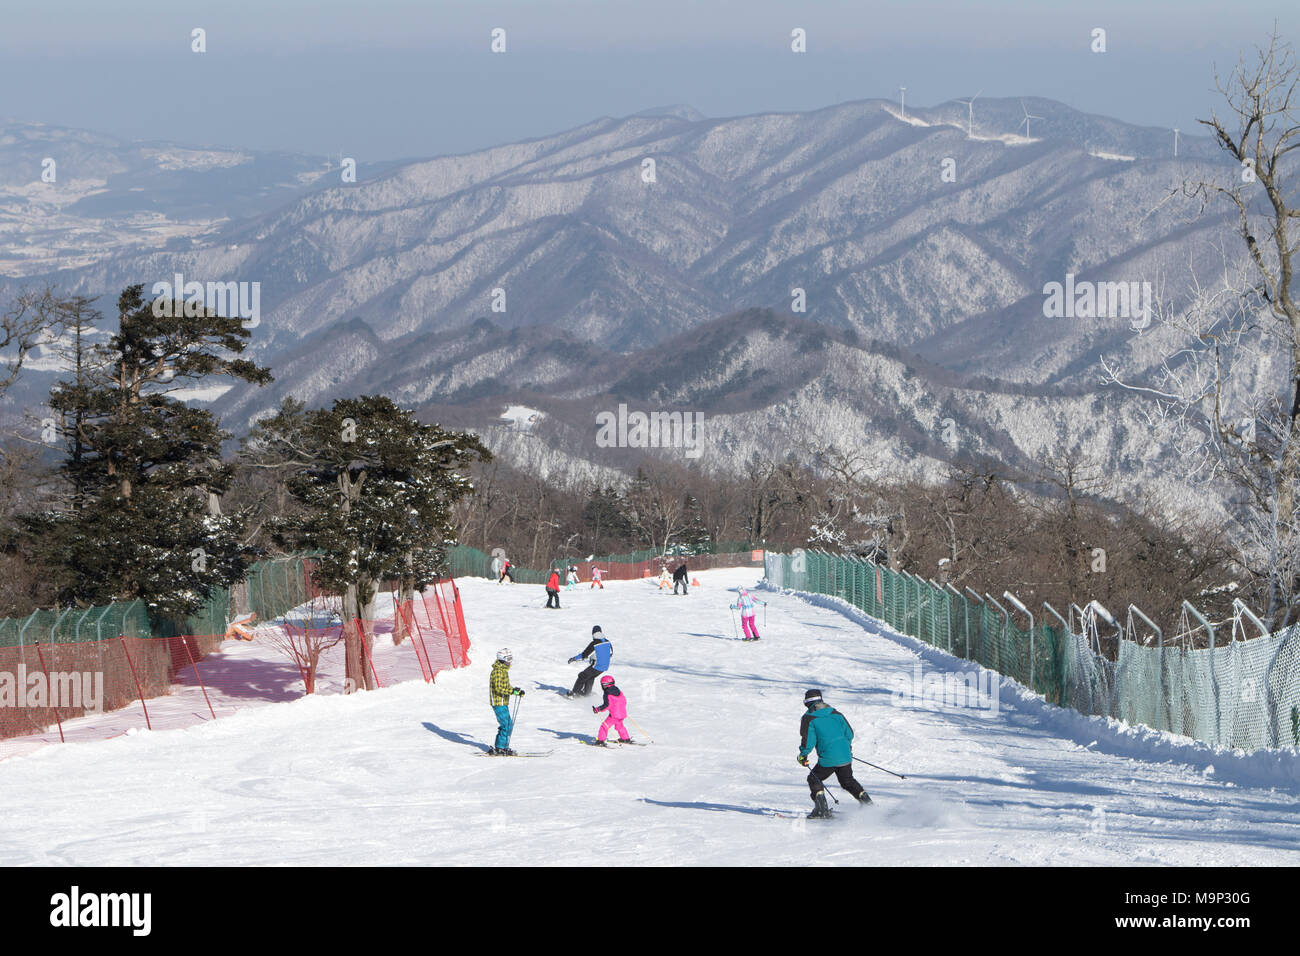 A look down the Rainbow Paradise run at Yongpyong resort, which is the Olympic descent for the 2018 Winter Games.  Yongpyong (Dragon Valley) Ski Resort is a ski resort in South Korea, located in Daegwallyeong-myeon, Pyeongchang, Gangwon-do. It is the largest ski and snowboard resort in Korea. Yongpyong will host the technical alpine skiing events for the 2018 Winter Olympics and Paralympics in Pyeongchang. Some scenes of the 2002 Korean Broadcasting System drama Winter Sonata were filmed at the resort. - Stock Image